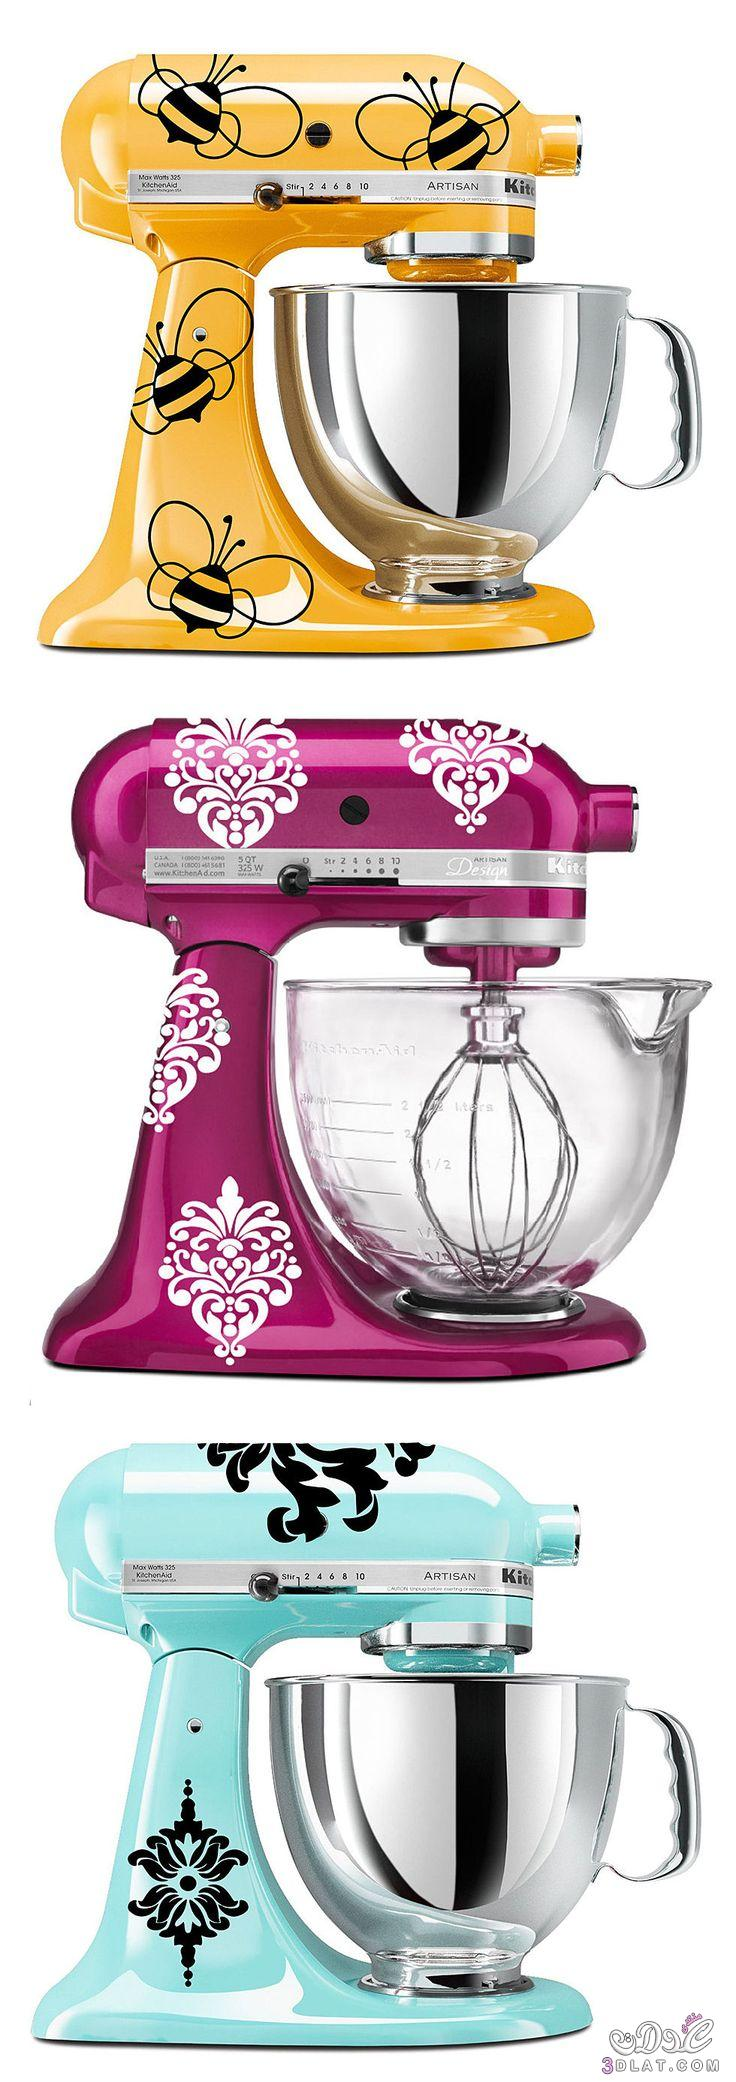 ������ ����� ����,����� ���� ������,KitchenAid mixer 3dlat.net_07_15_dc30